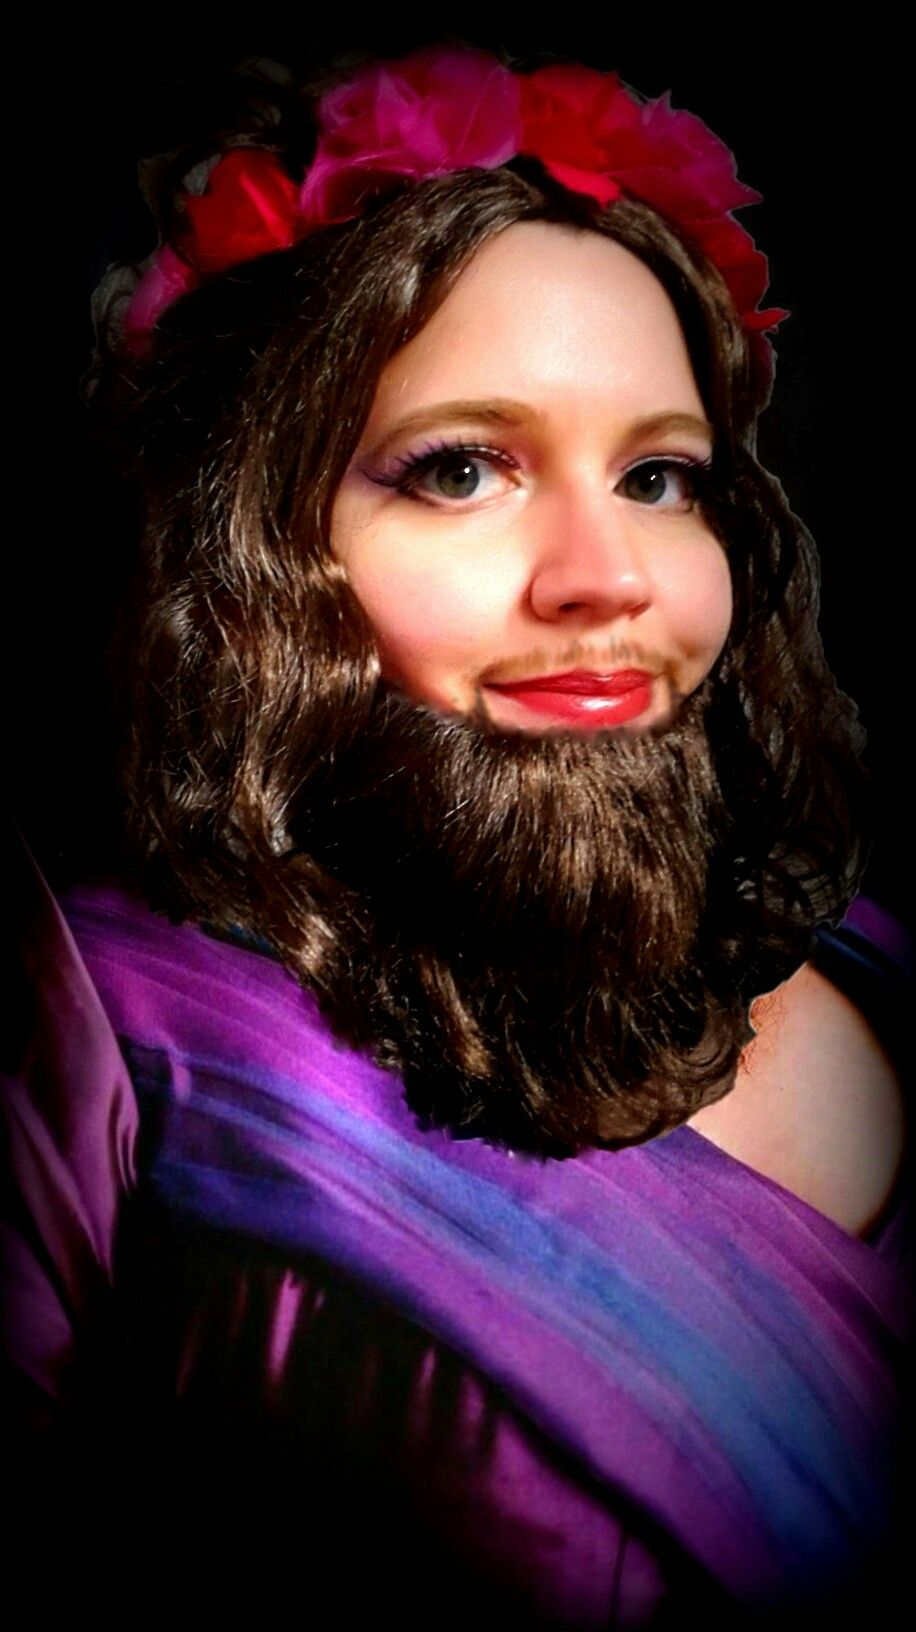 Lettie Lutz Real Lettie Lutz The Bearded Lady The Greatest Showman Fancy Dress